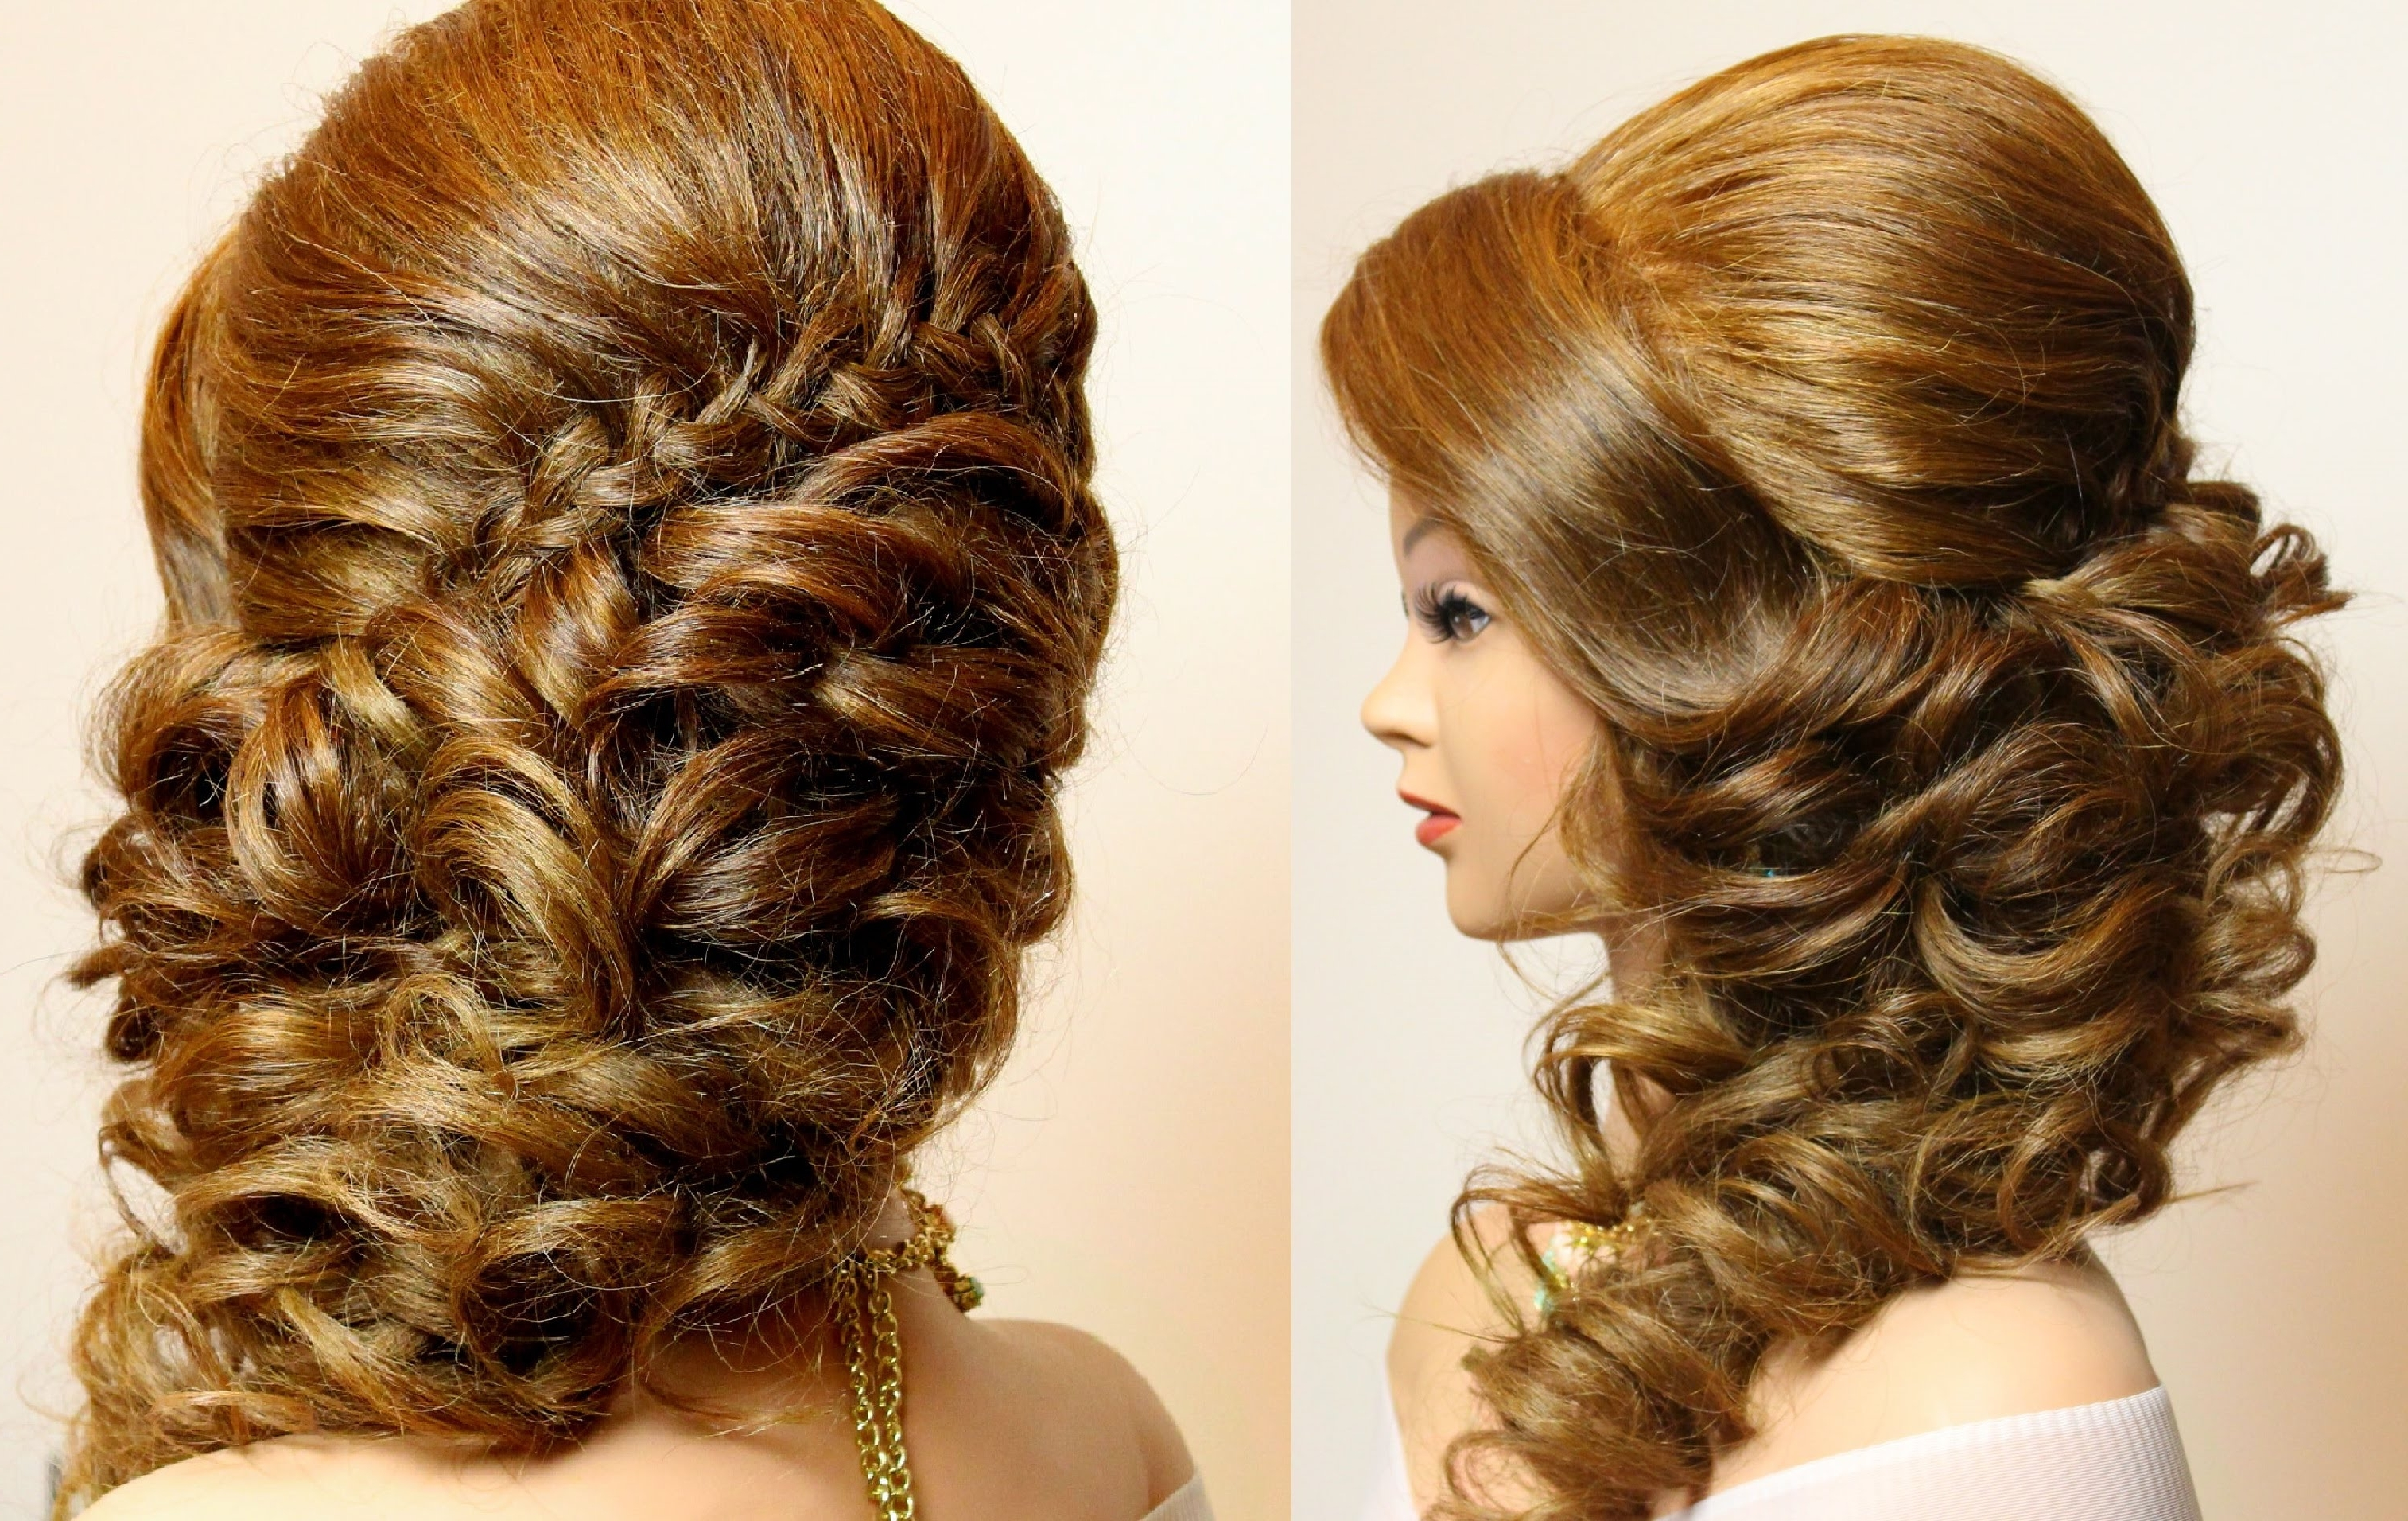 Bridal Hairstyle With Braid And Curls (View 5 of 15)